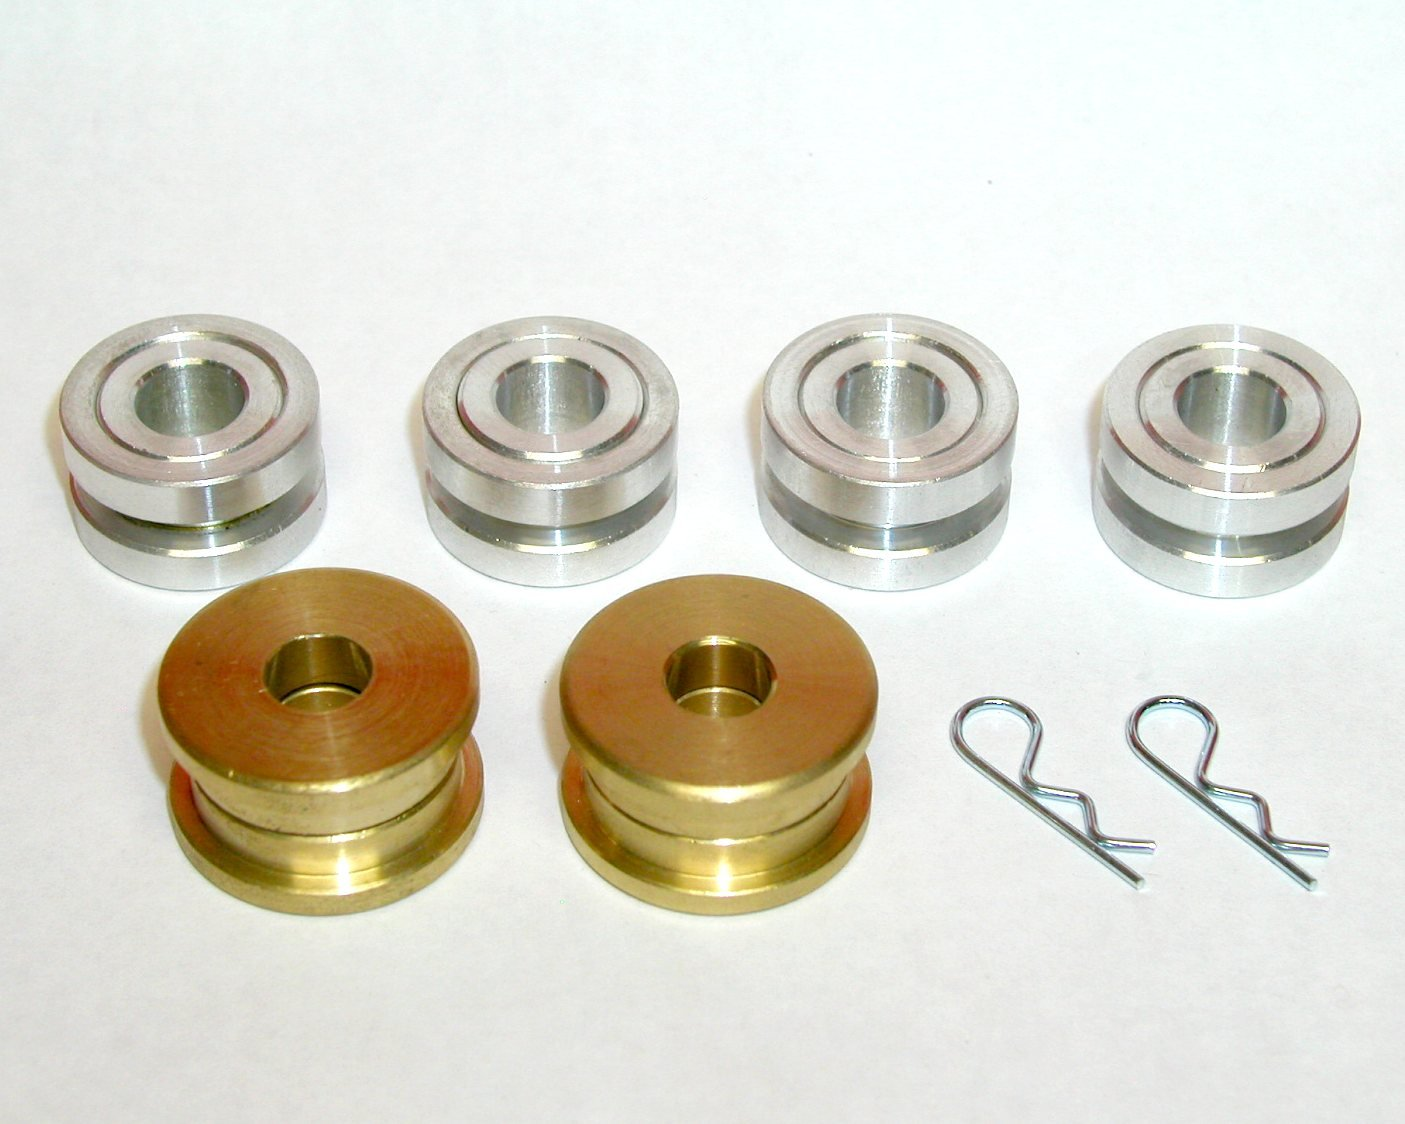 3000GT Shifter Stabilizer Bushing Kit for Shifter Base and Shift Cables